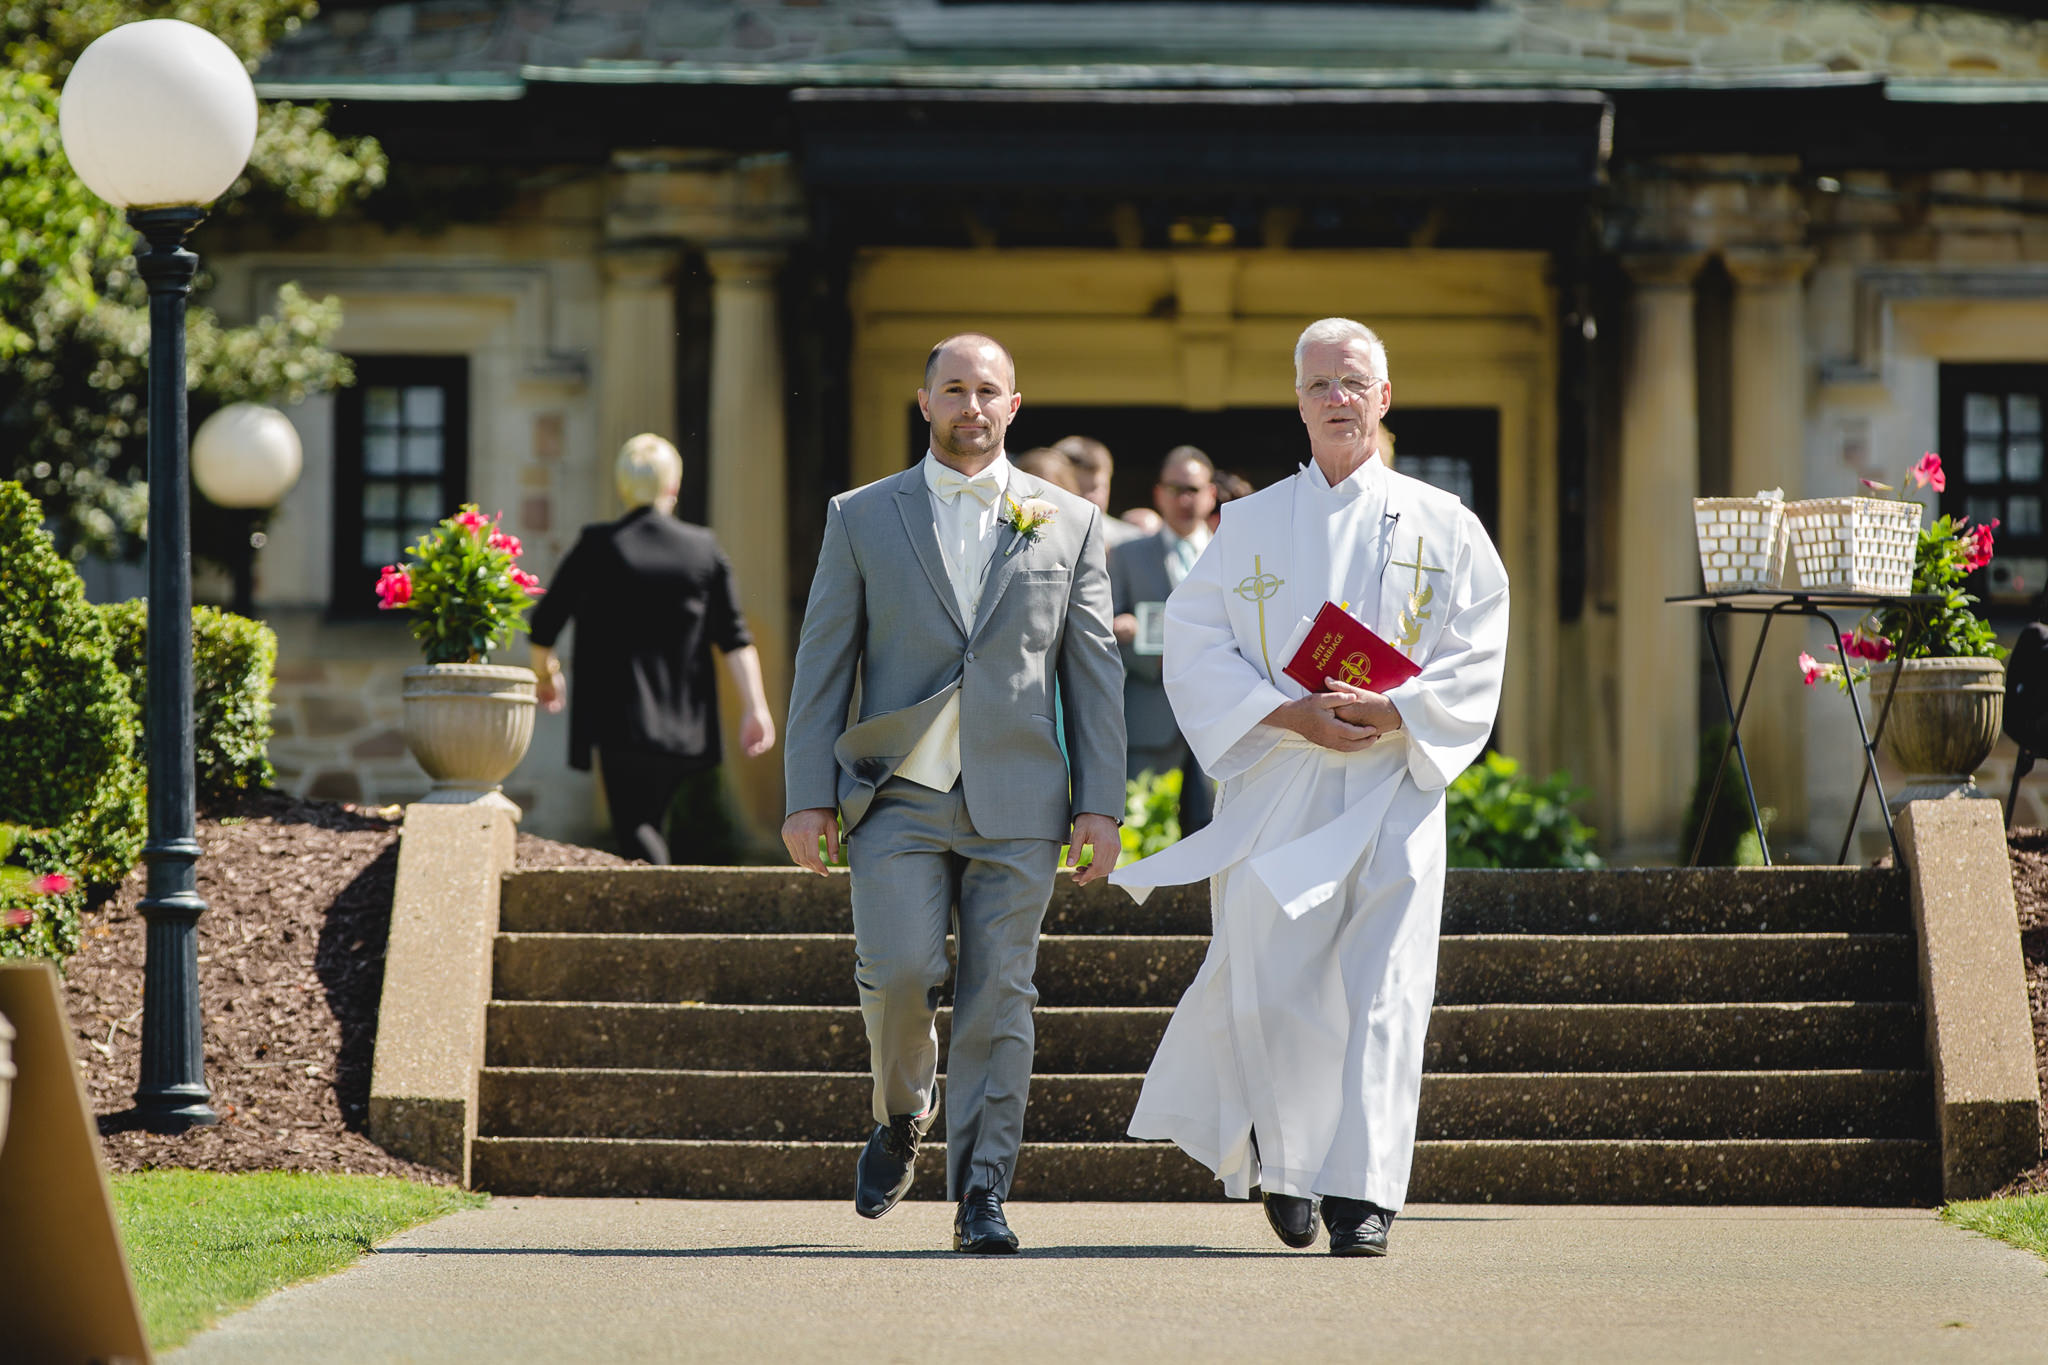 Groom and priest walk down the aisle at an outdoor wedding ceremony